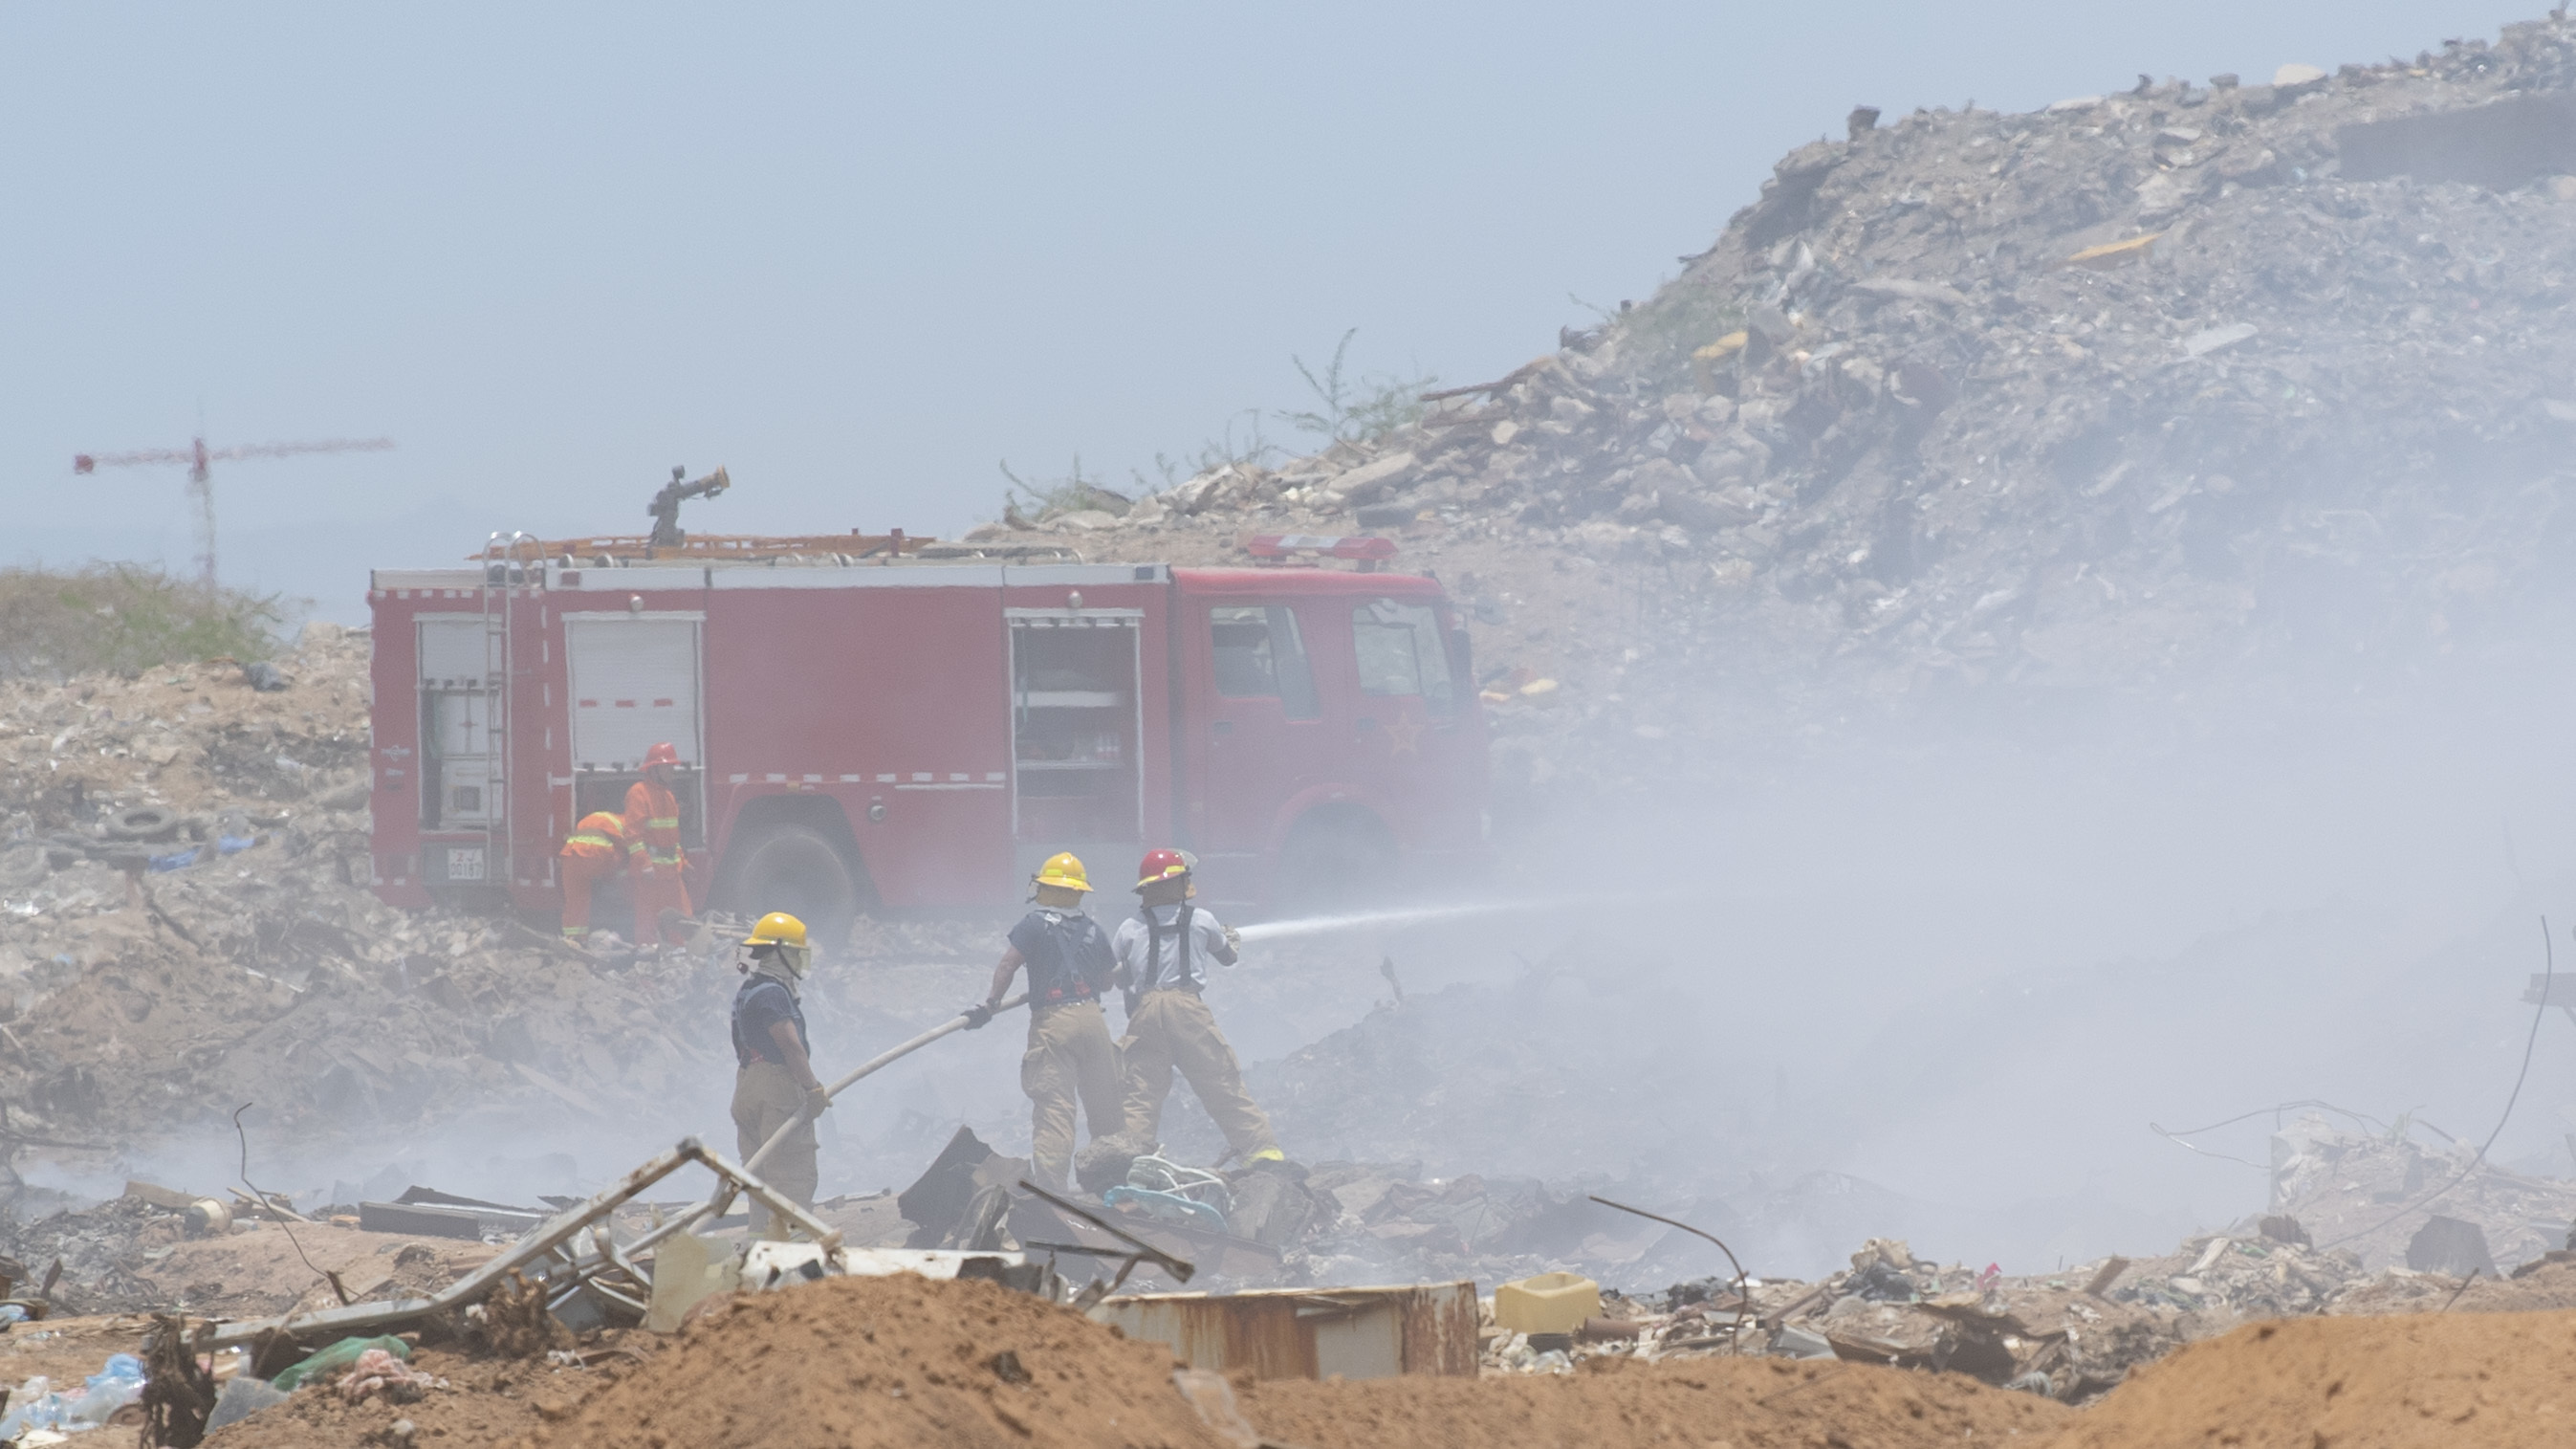 Camp Lemonnier Fire and Emergency Services firefighters use a hose to extinguish a fire alongside Chinese firefighters at Douda landfill in Djibouti, Aug. 14, 2019.  At the request of the government of Djibouti and in support of the U.S. Embassy Djibouti, Combined Joint Task Force-Horn of Africa engineers worked alongside Camp Lemonnier, Djiboutian, French and Chinese firefighters to help stop a fire at the landfill from spreading. (U.S. Air Force photo by Staff Sgt. J.D. Strong II)